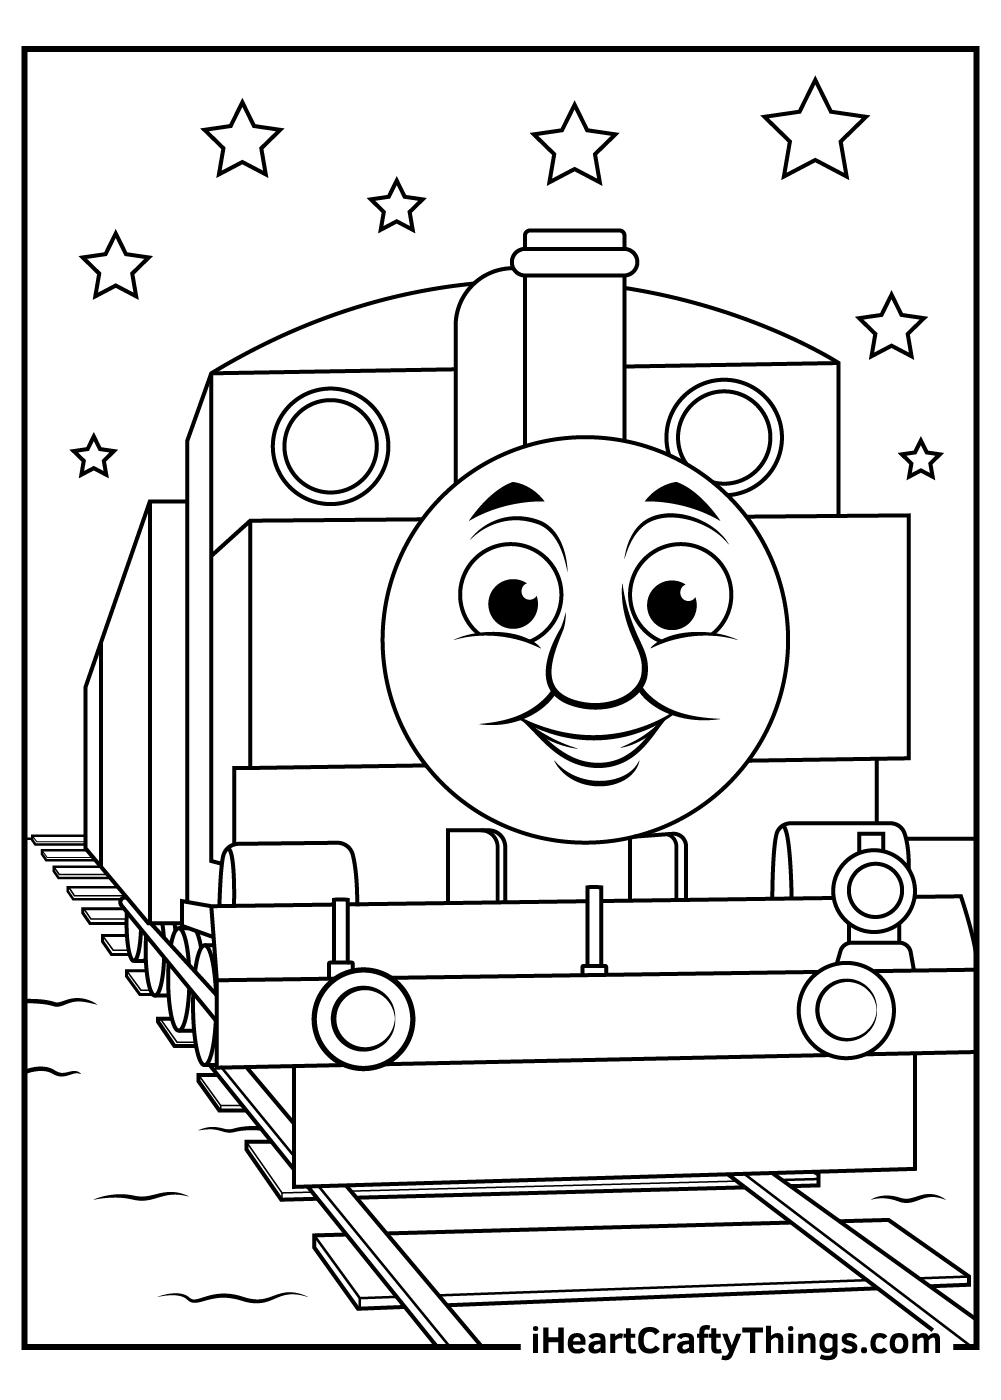 easy thomas the train coloring pages free